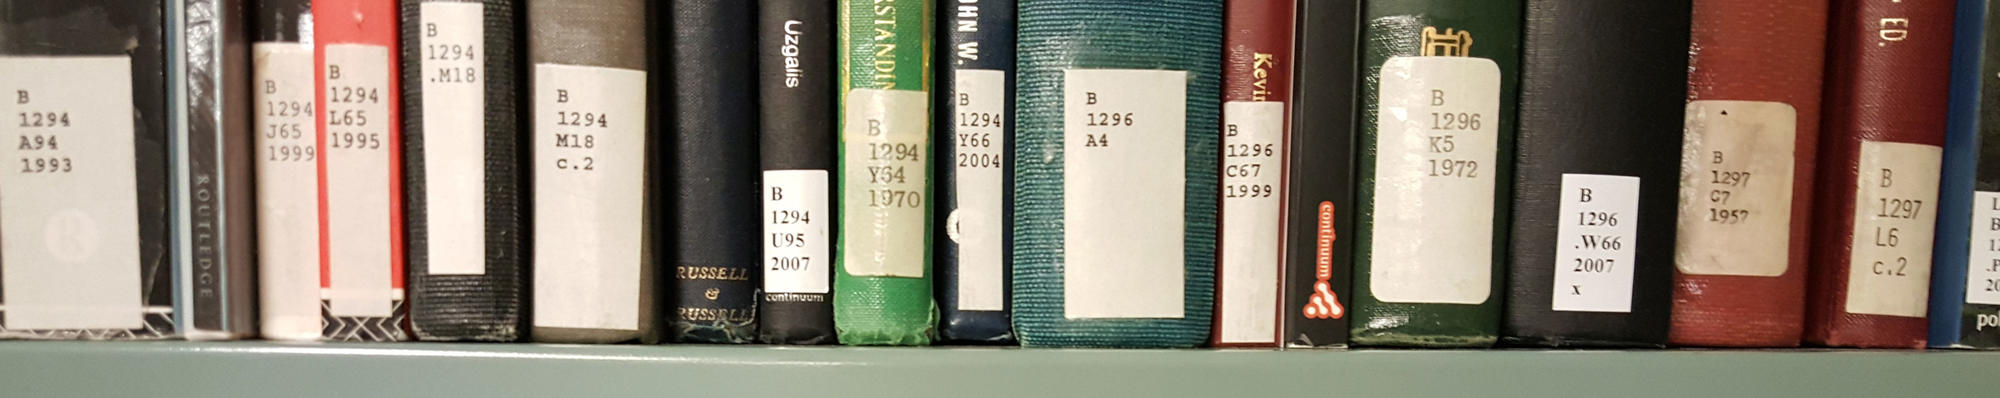 library book spines with call number stickers